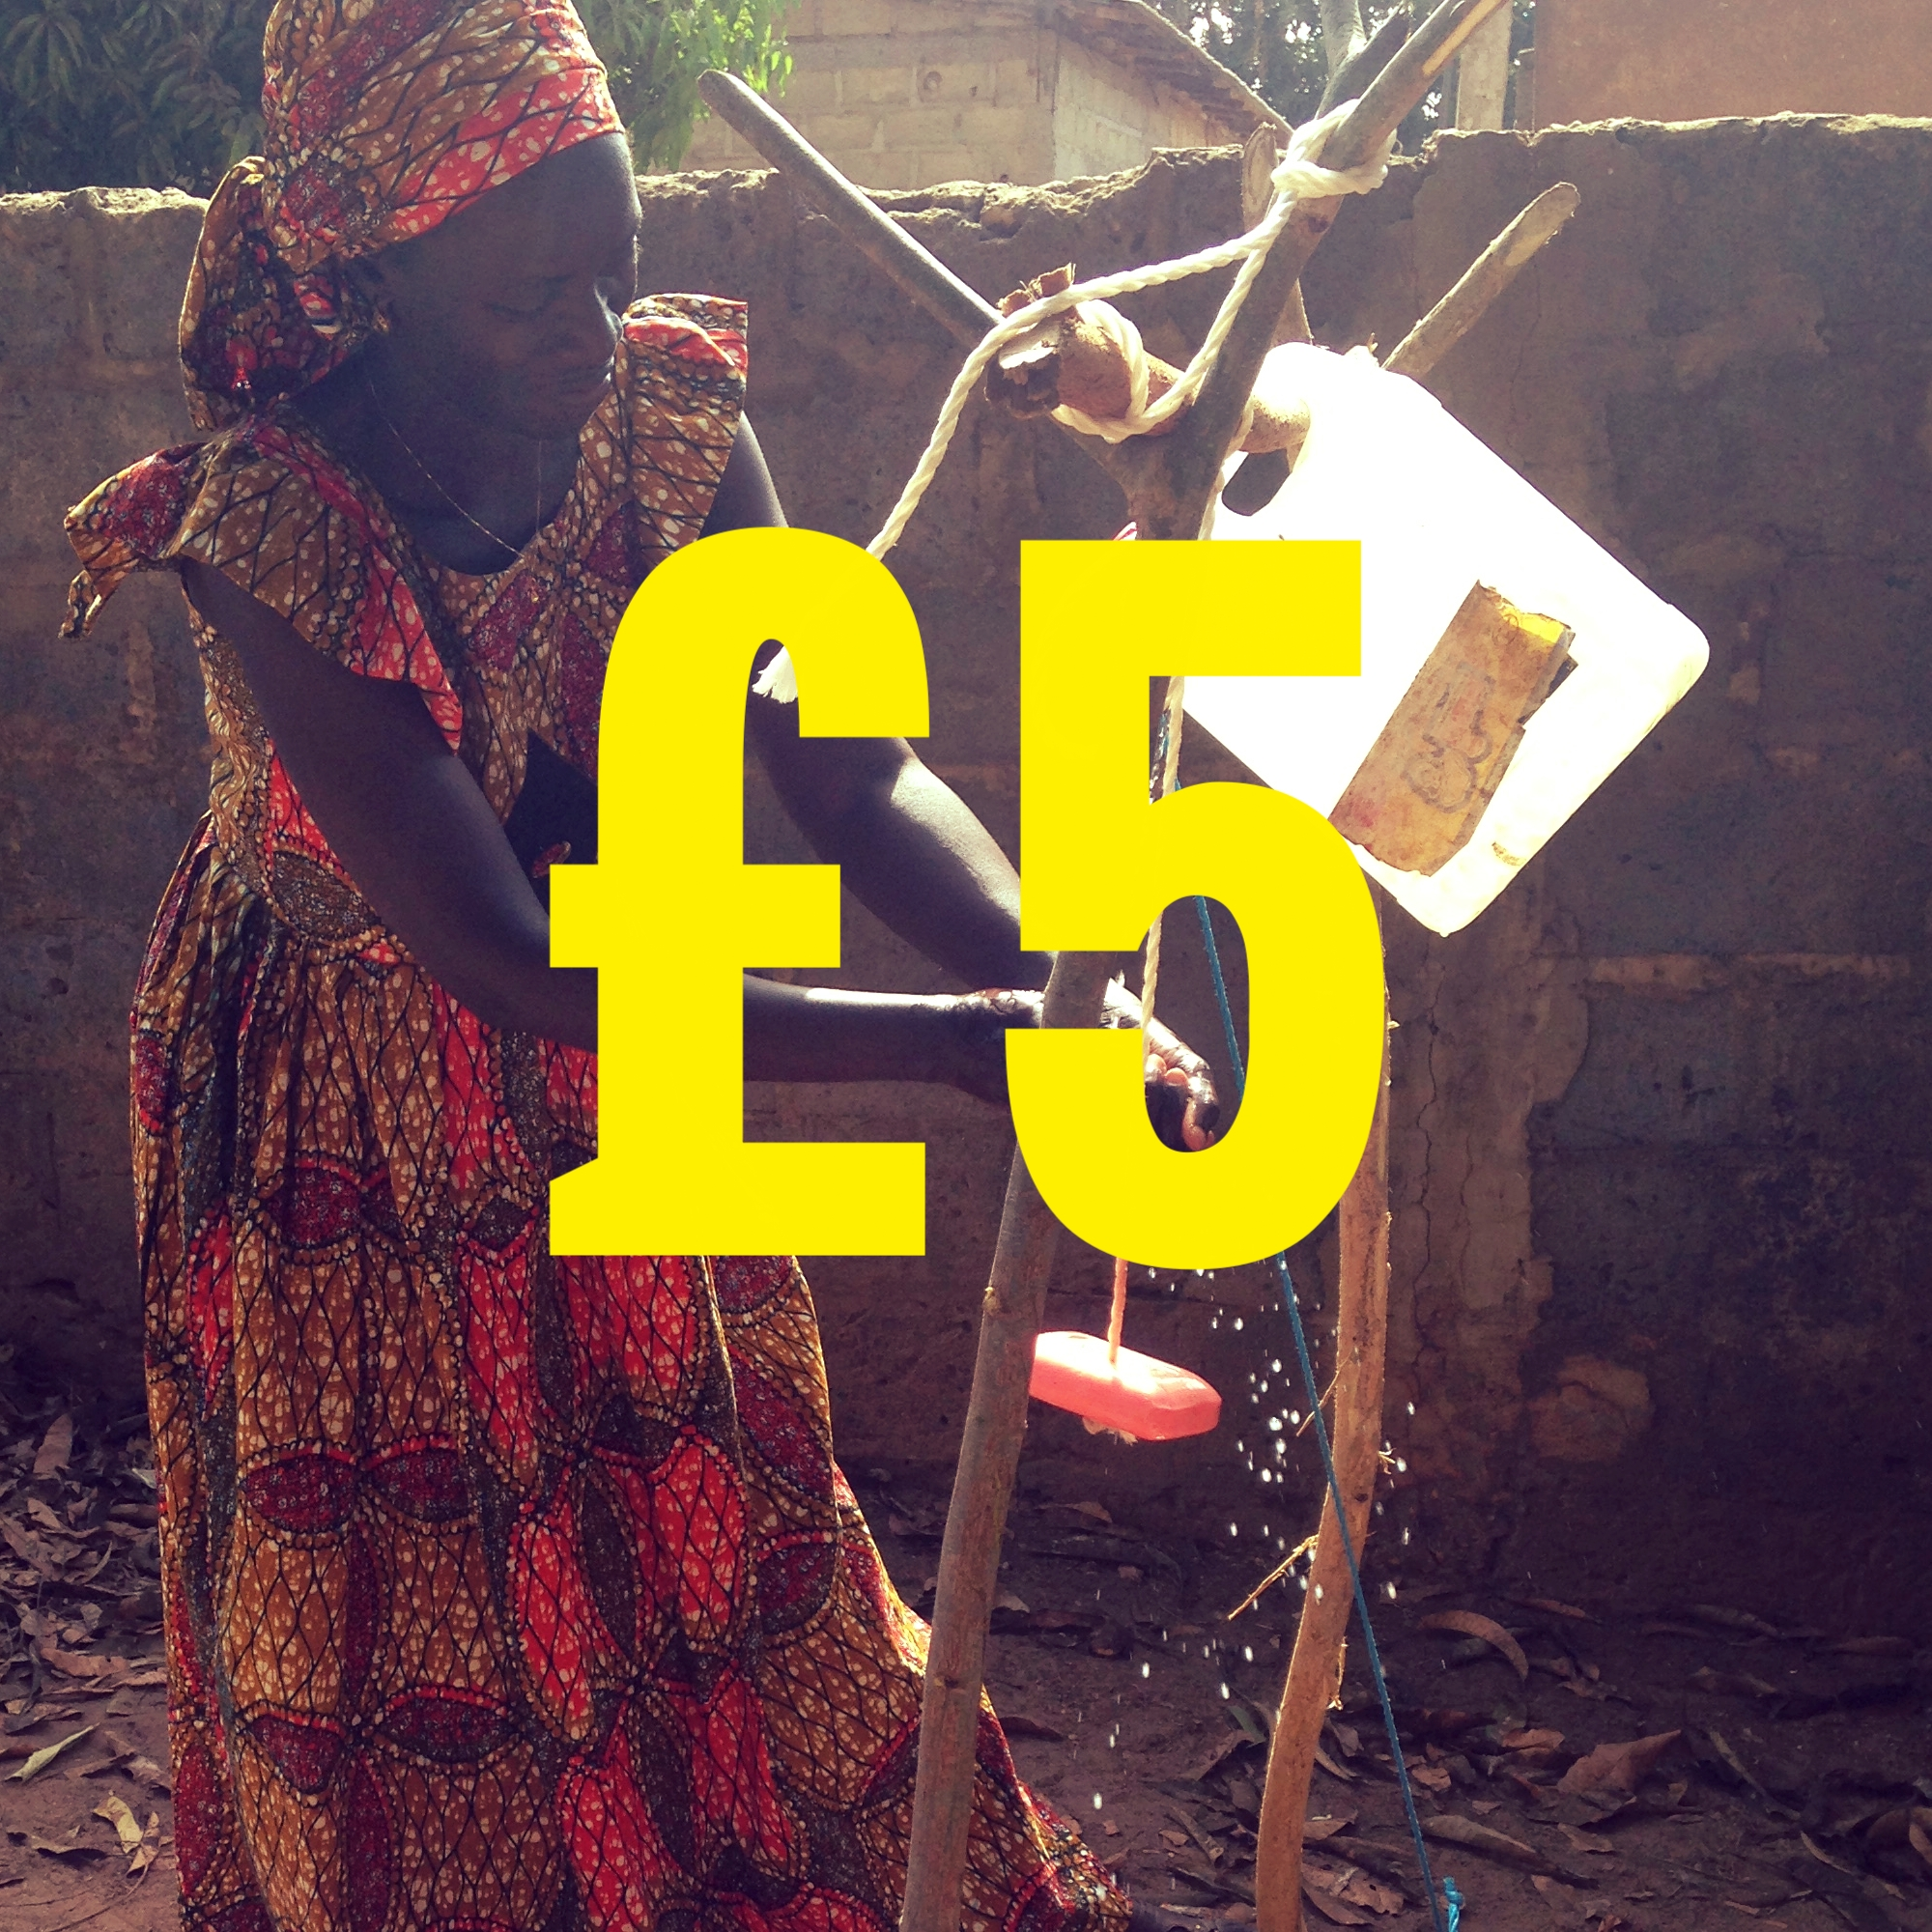 Hand-washing with soap is one of the most cost-effective interventions to prevent diarrhea related deaths and disease. £5 will cover the costs of buying the materials to construct a Tippy Tap. This includes soap, rope and a 5 litre container.